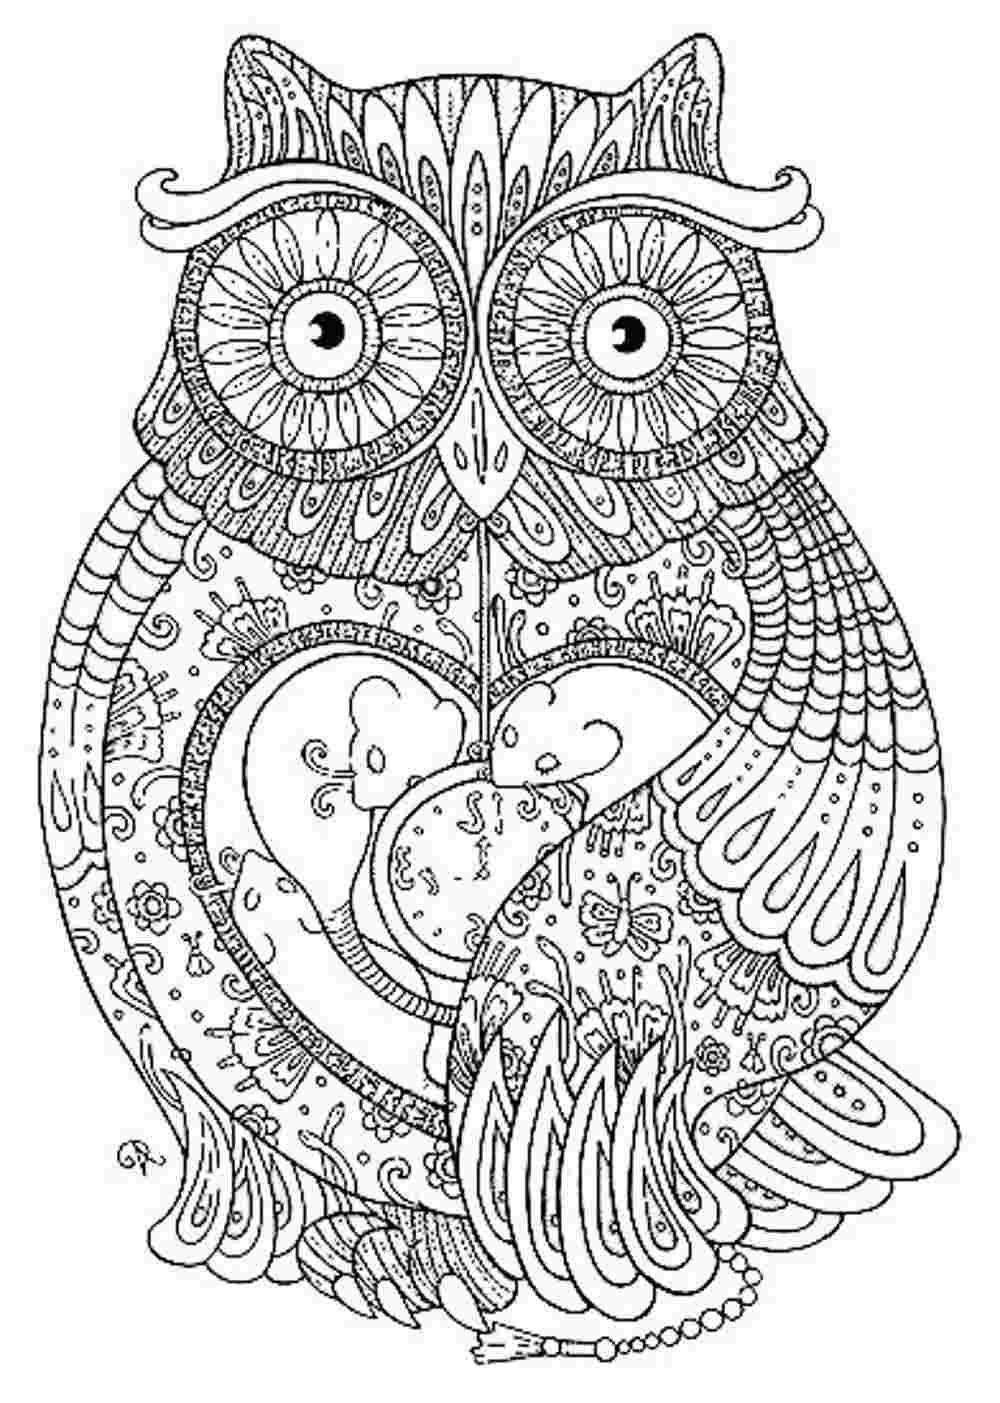 Free online printable adult coloring pages - Animal Coloring Pages For Adults Coloring Pages Printable And Coloring Book To Print For Free Find More Coloring Pages Online For Kids And Adults Of Animal